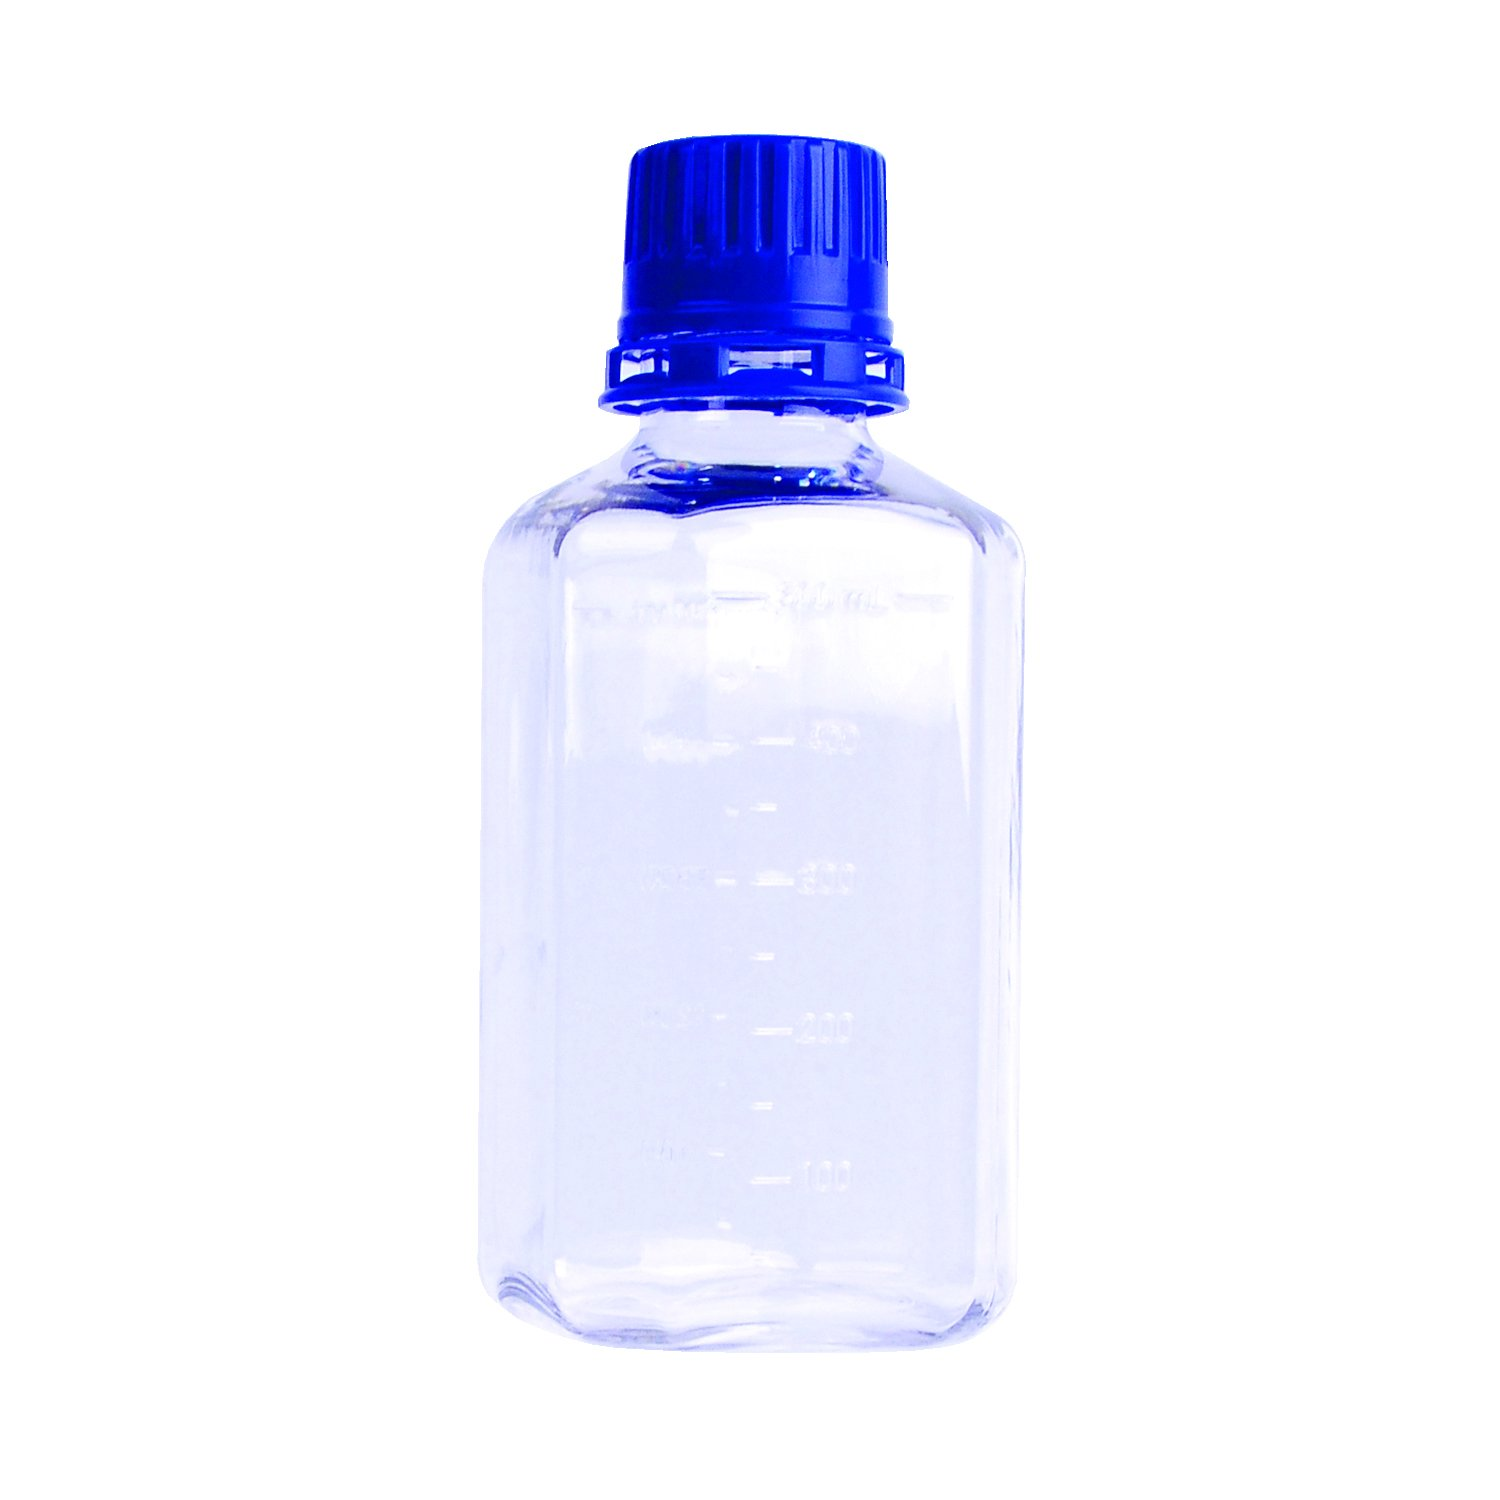 Pack of 12 Wheaton WPBGC0500S Square Media Bottle with Tamper Evident Cap PETG 500 ml